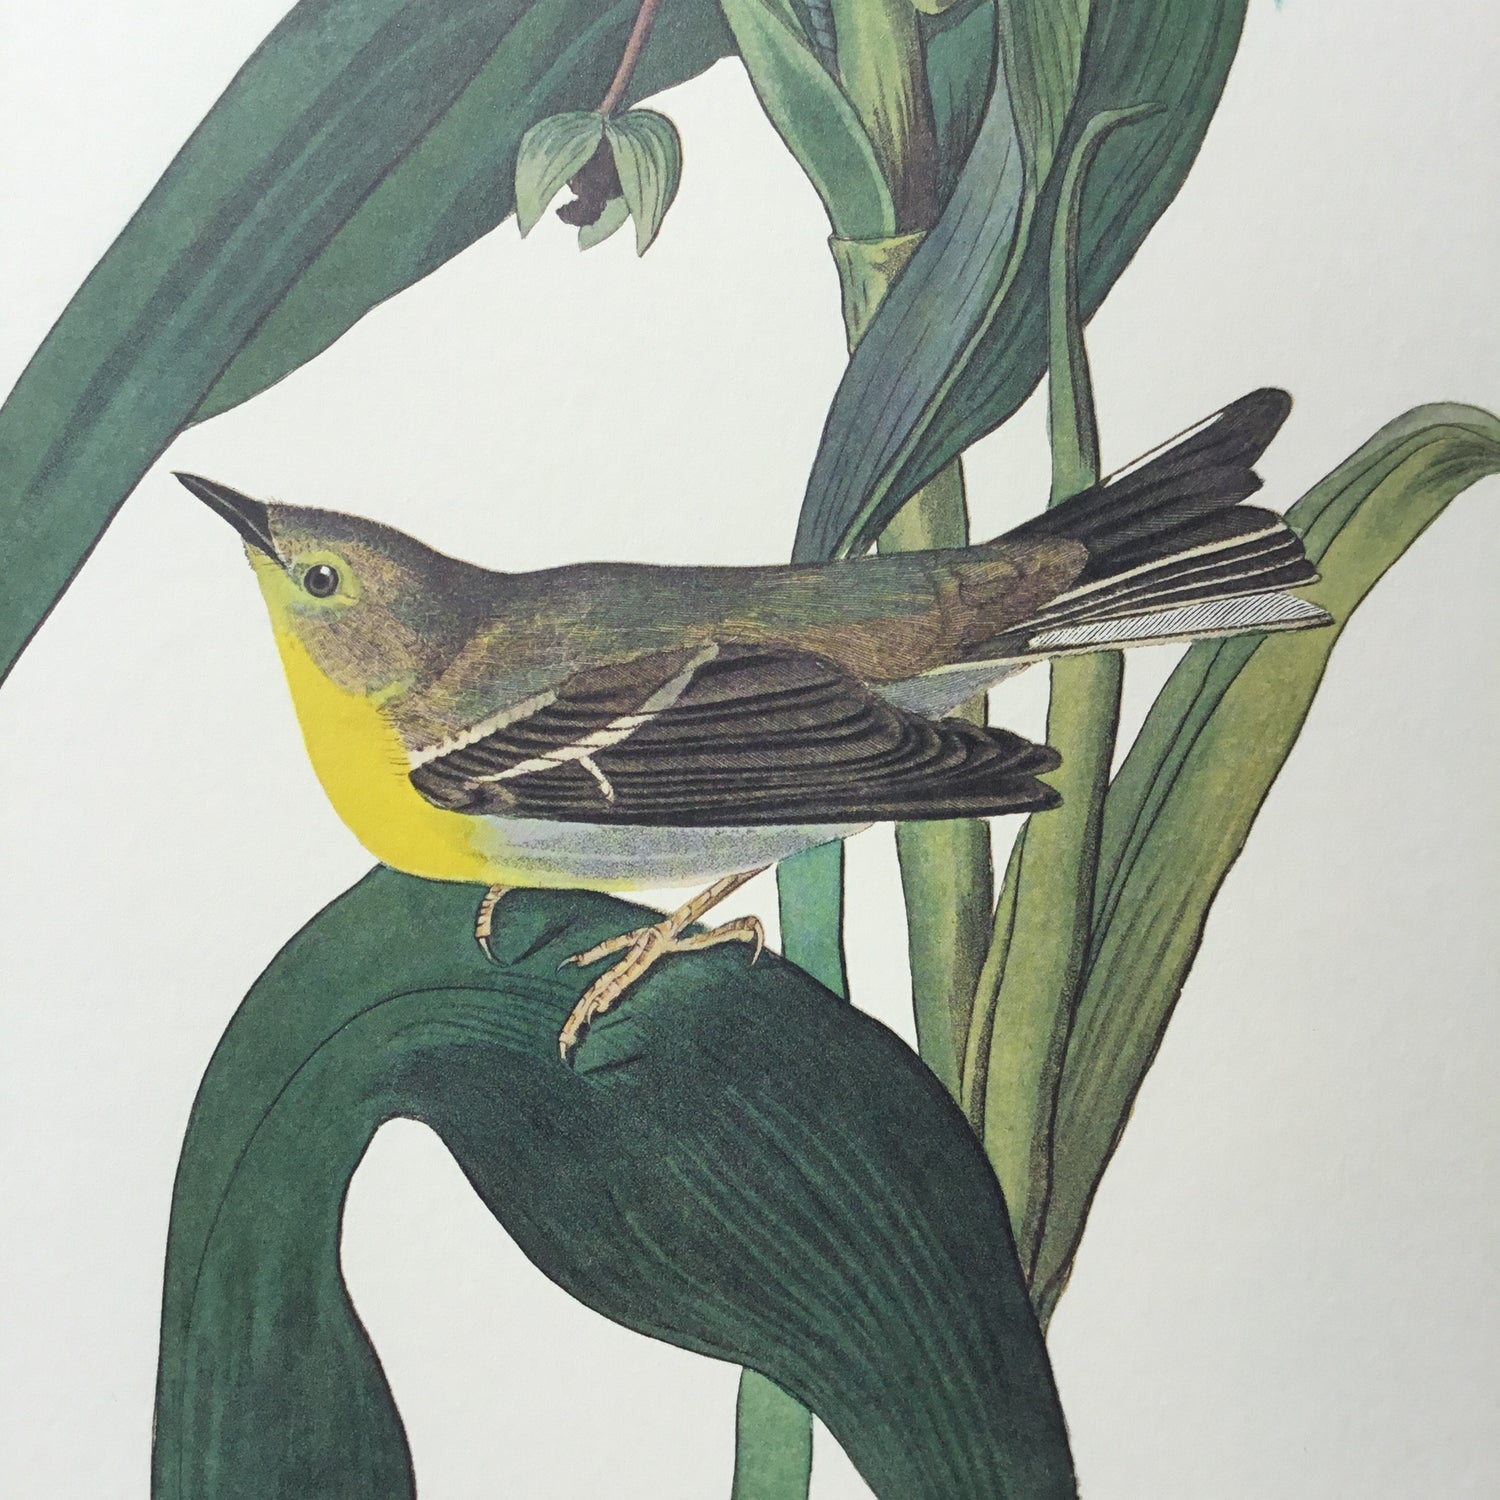 Vigors's Warbler Audubon Print. Princeton Audubon. The world's only direct camera edition of this image.